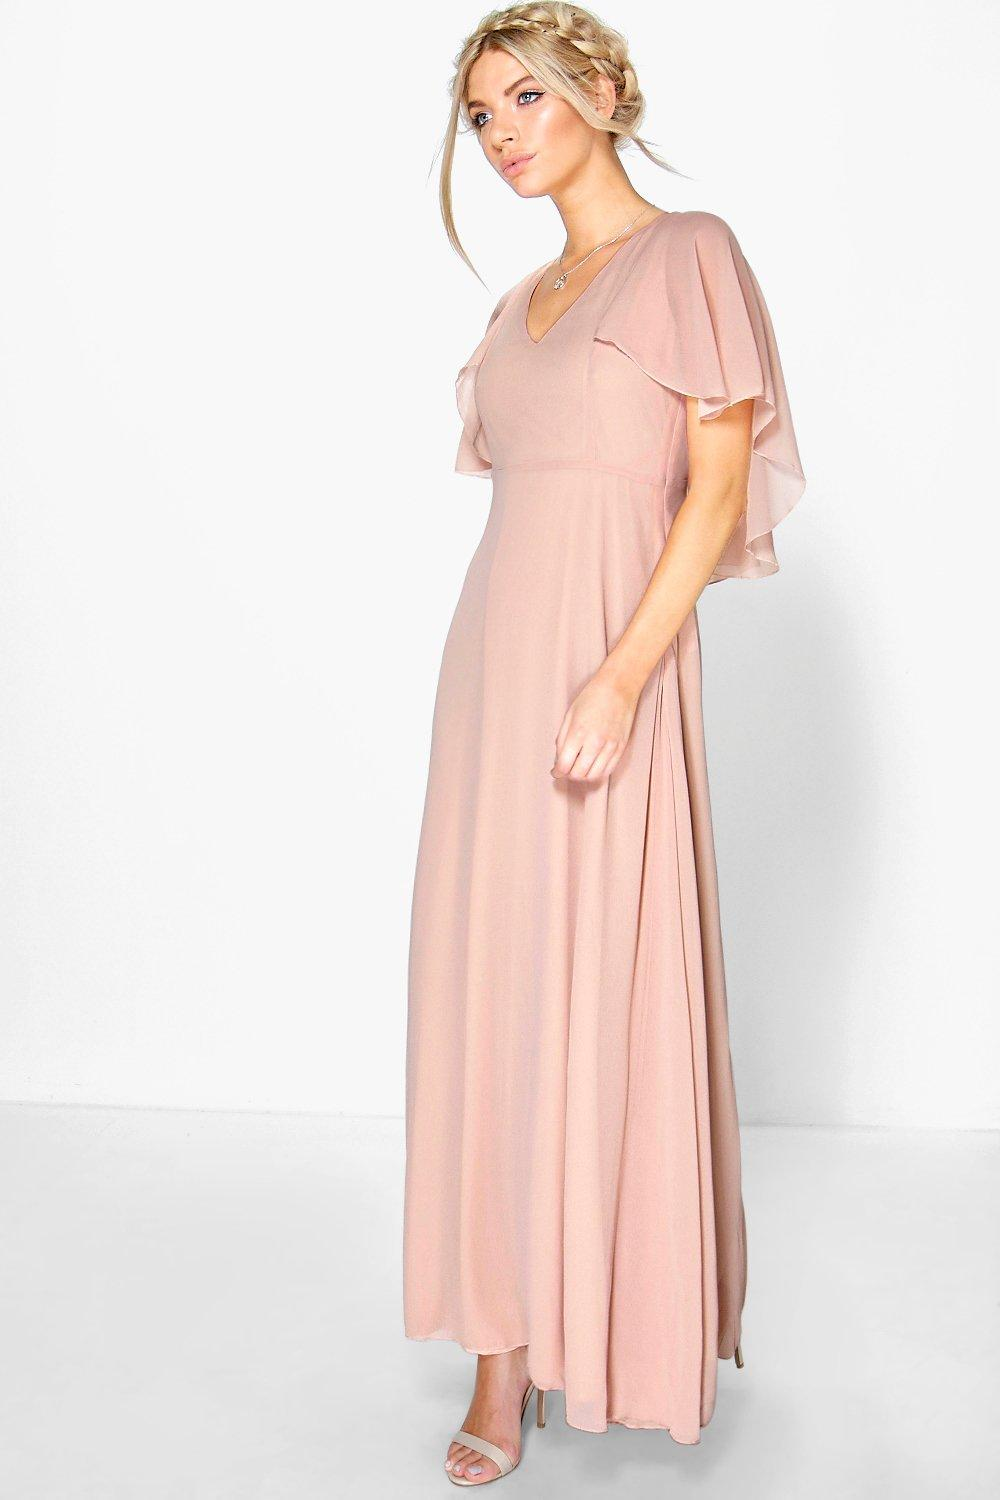 Vintage Evening Dresses and Formal Evening Gowns Womens Chiffon Cape Sleeve Maxi Bridesmaid Dress - Pink - 12 $31.50 AT vintagedancer.com